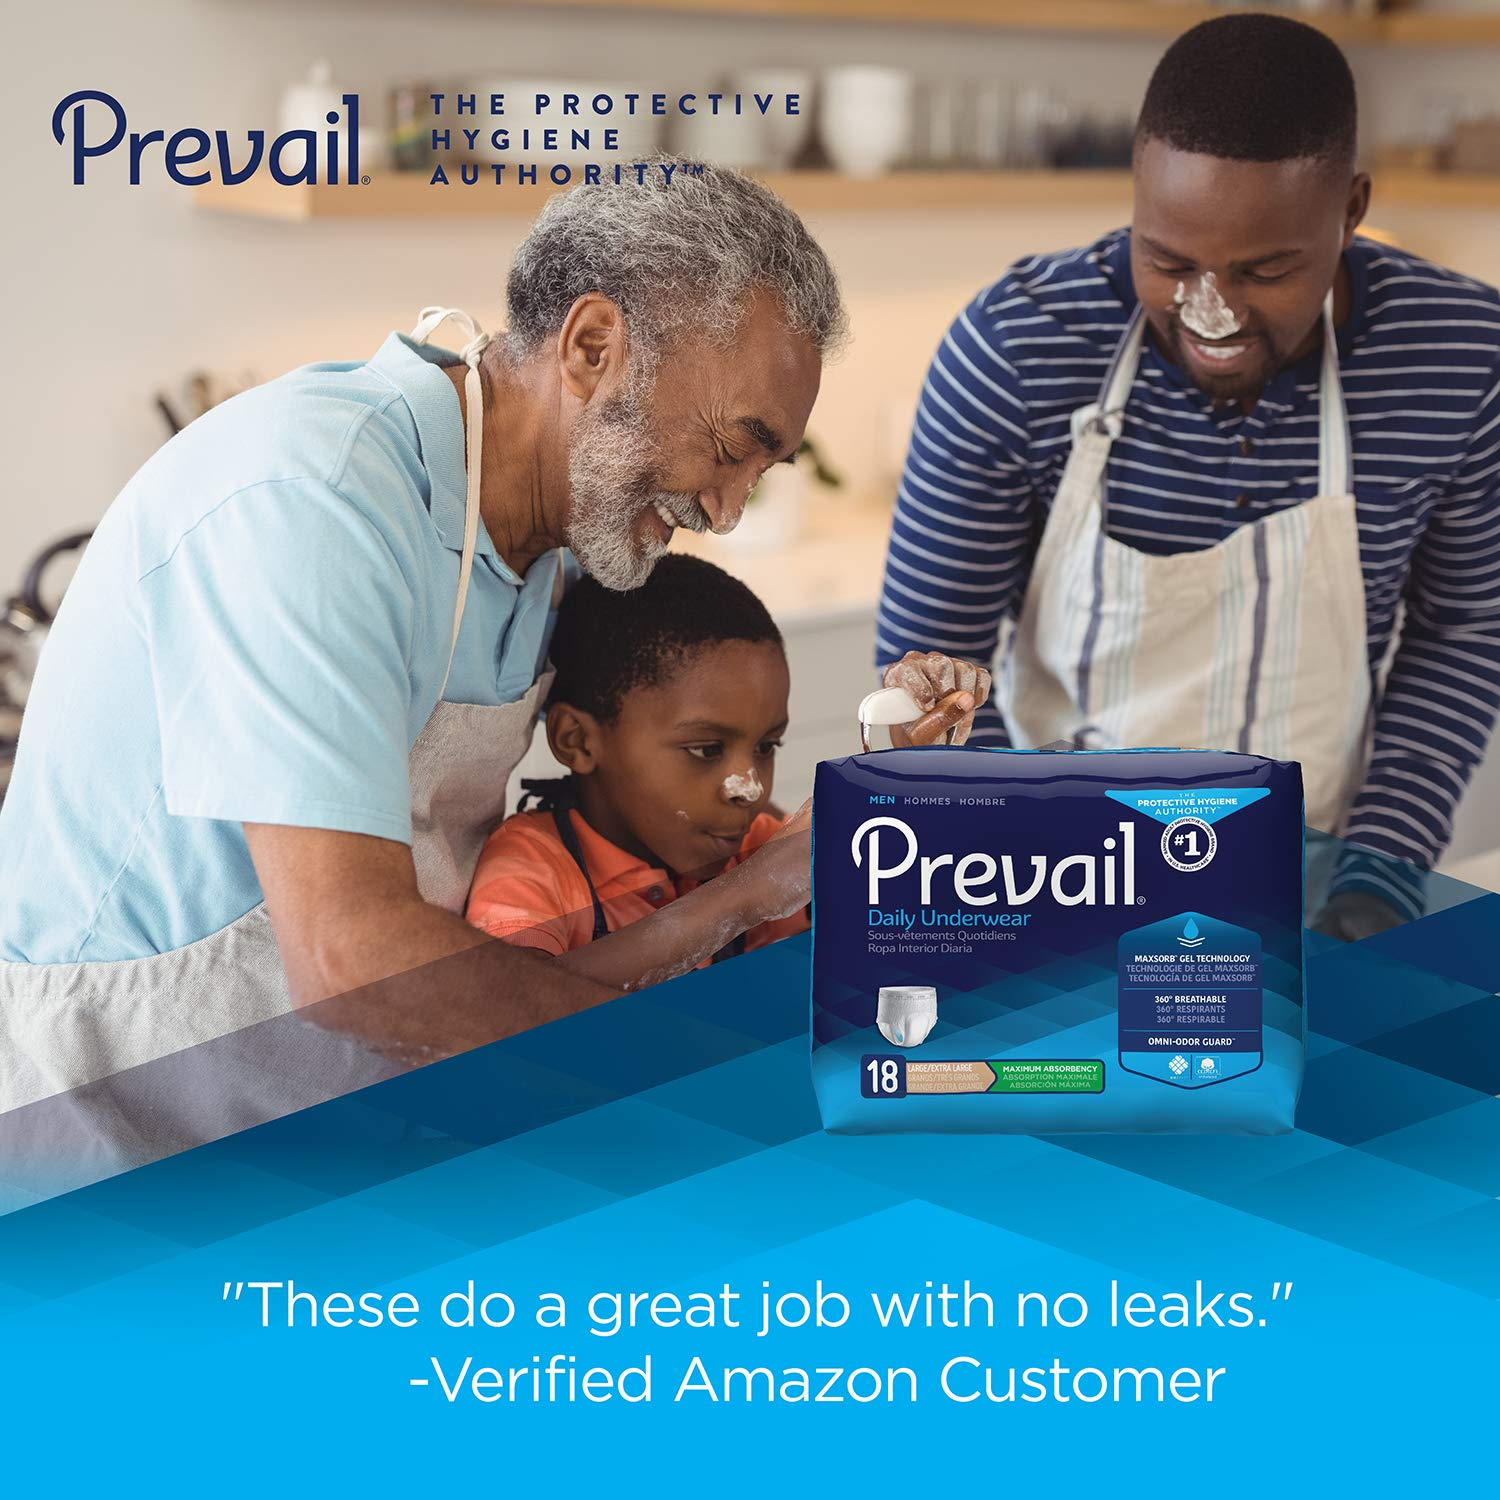 Amazon.com: Prevail Maximum Absorbency Incontinence Underwear for Men, Large/Extra Large, 54 Count: Health & Personal Care